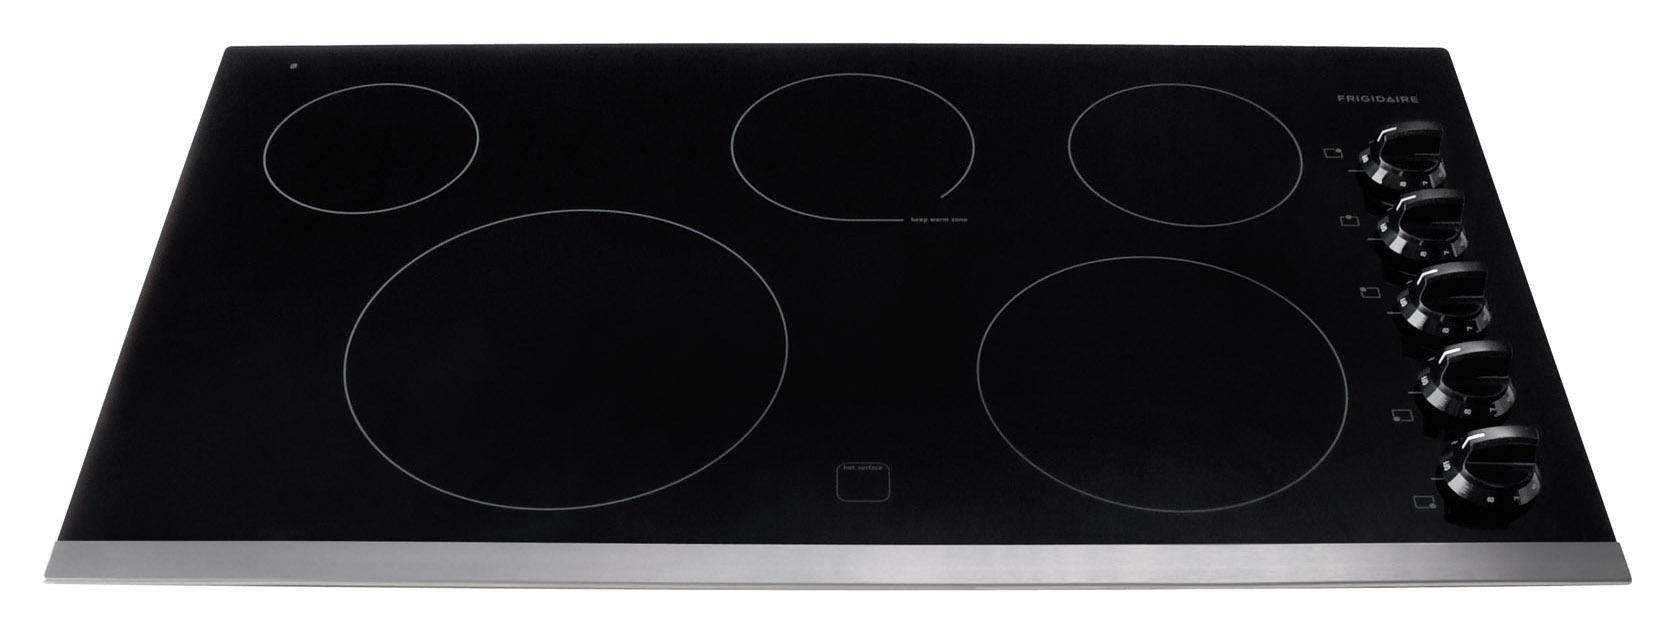 "Frigidaire Electric Cooktops 36"" Built-In Electric Cooktop - Item Number: FFEC3625LS"